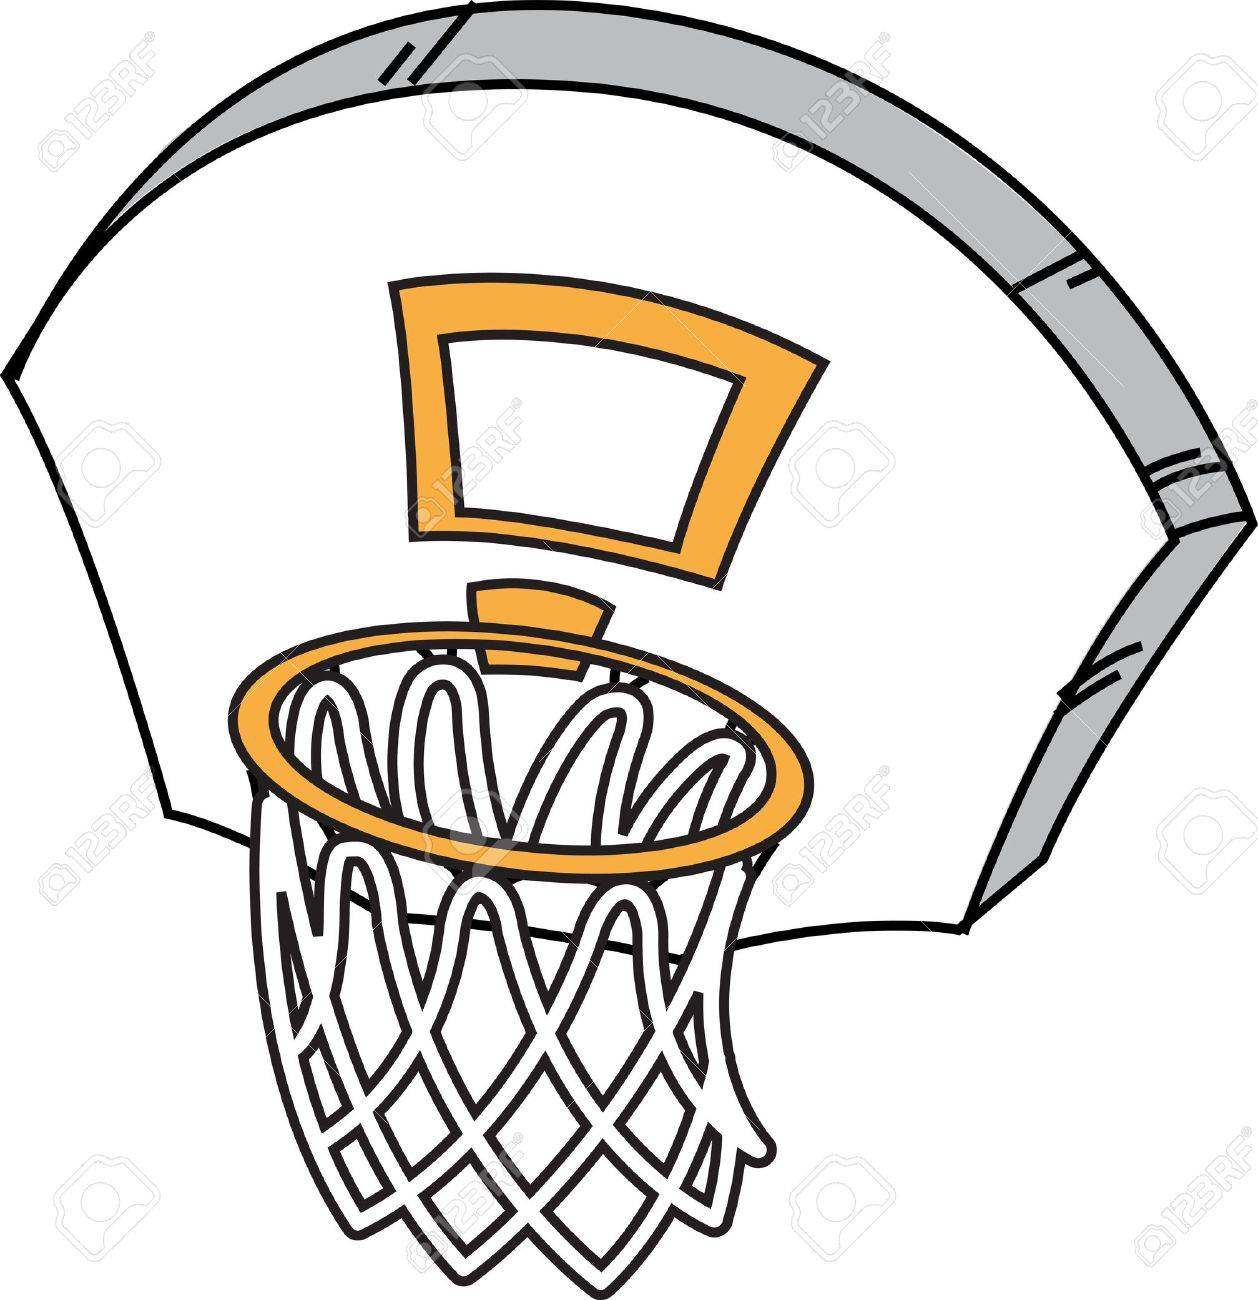 Cartoon Basketball Hoop Net And Backboard Royalty Free Cliparts